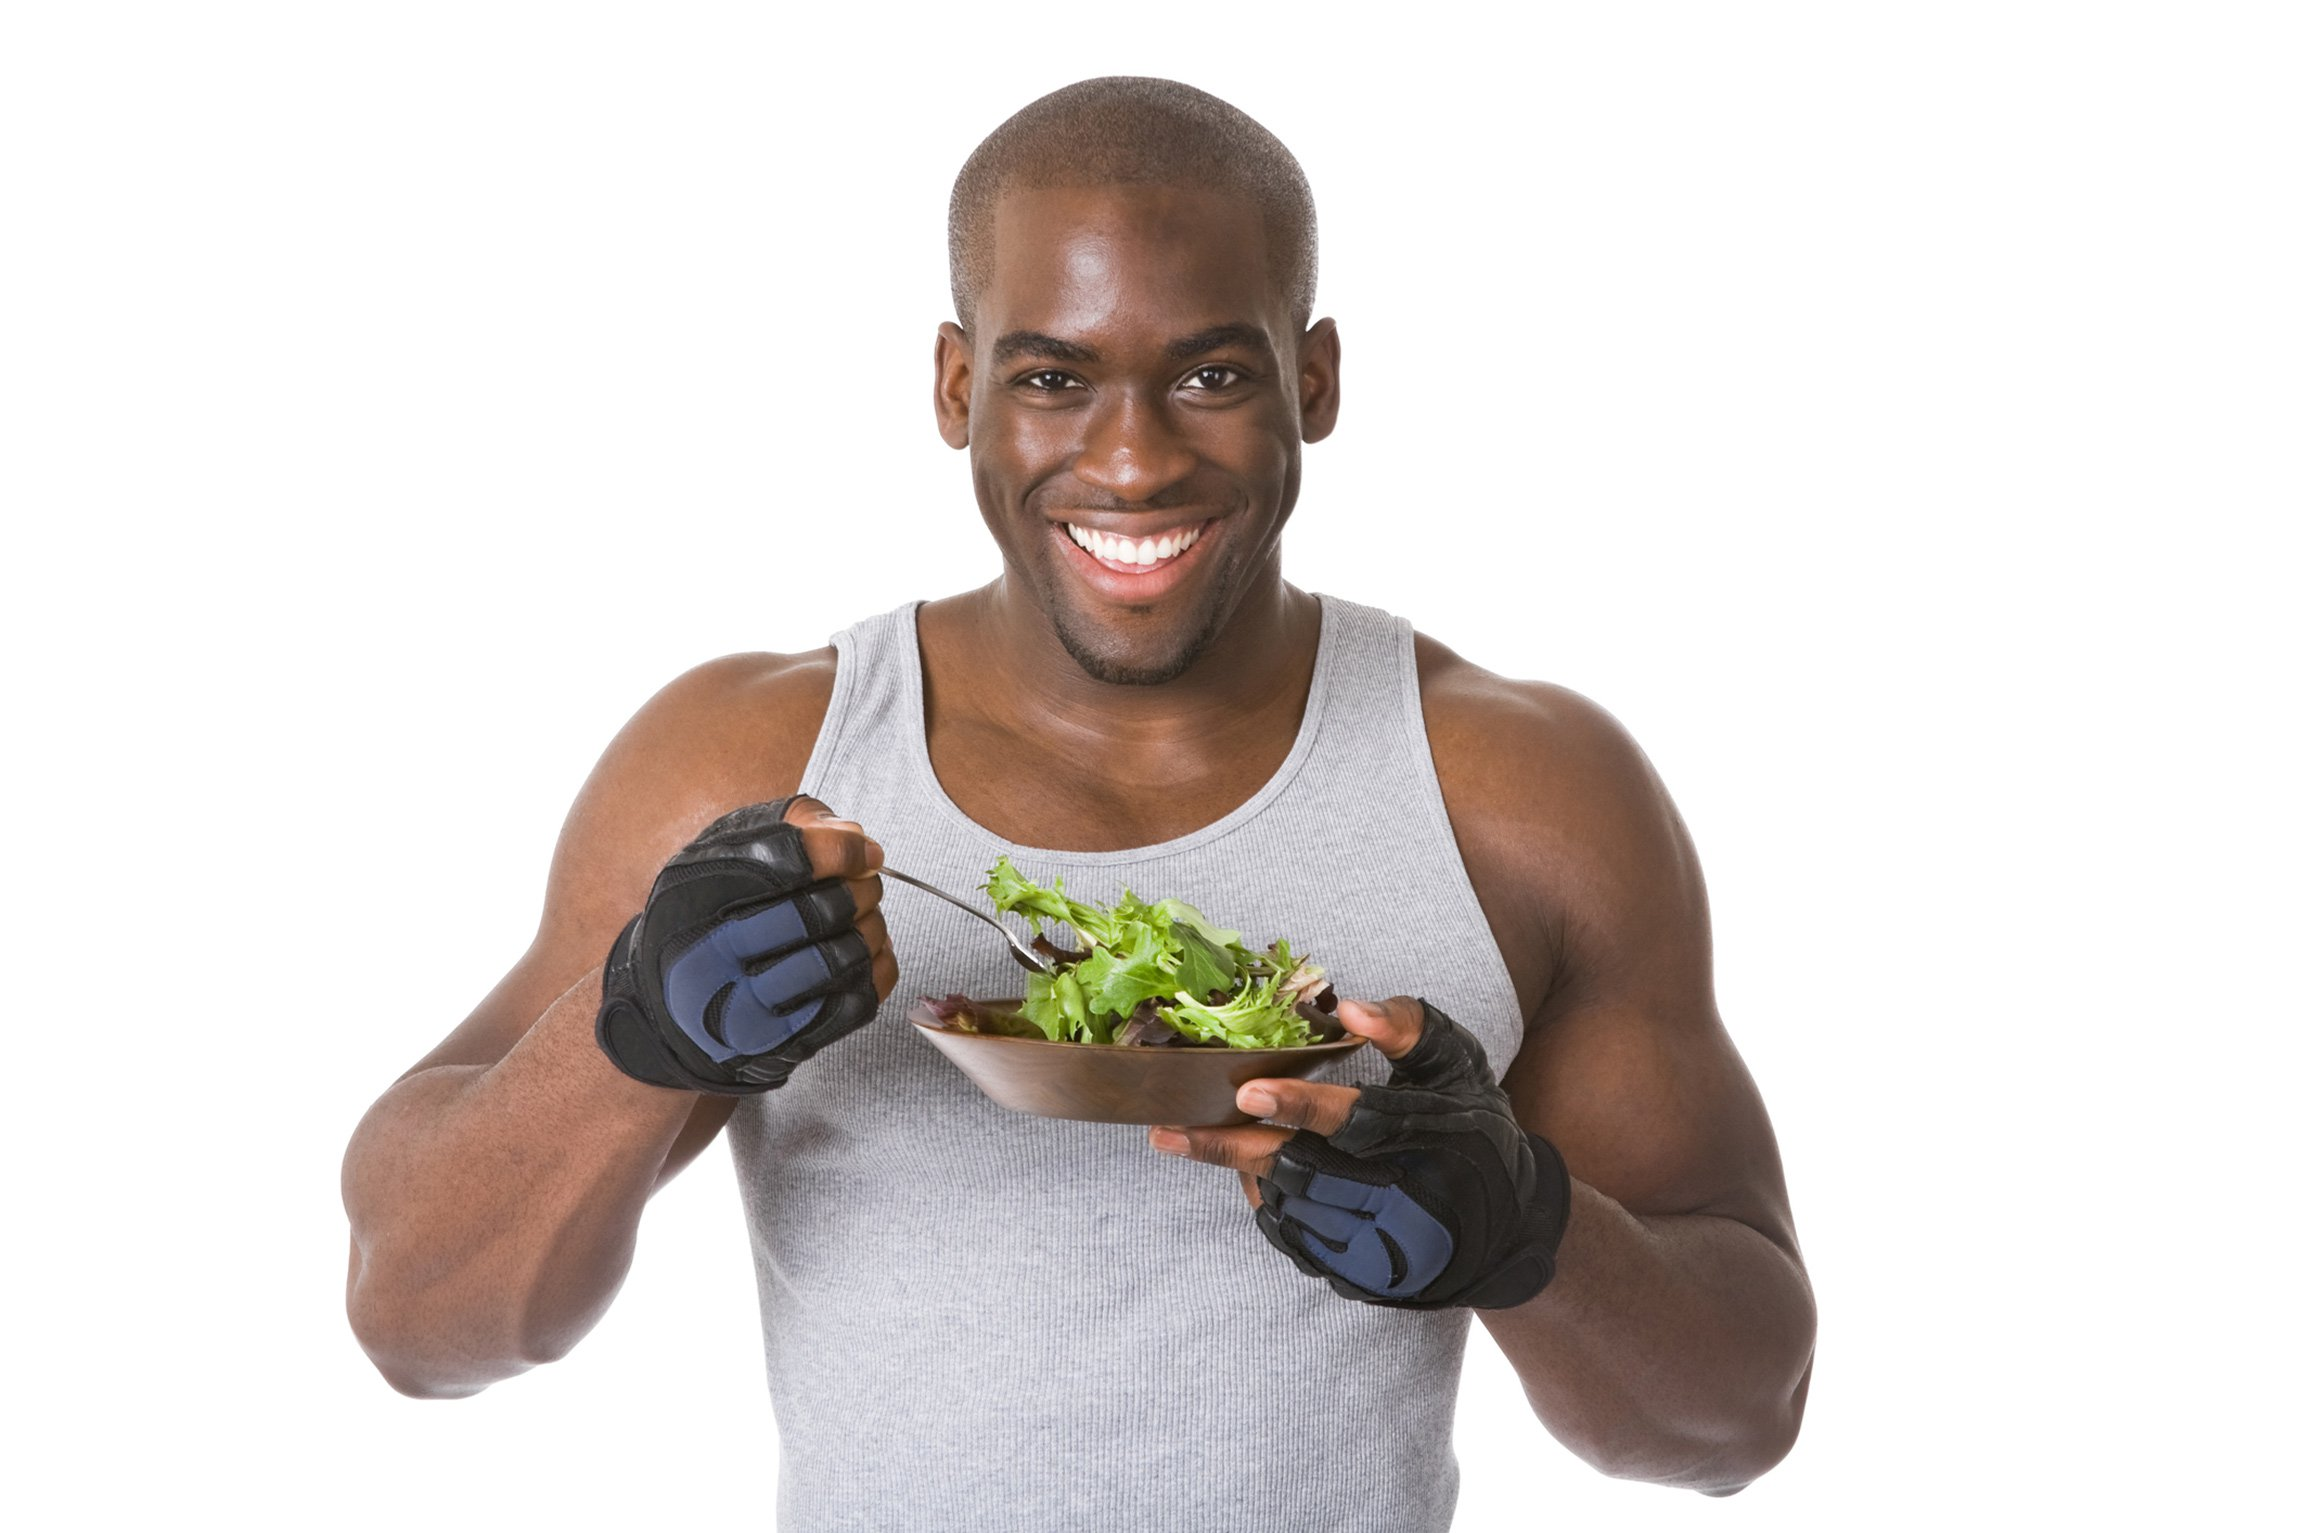 Body builder eating a salad